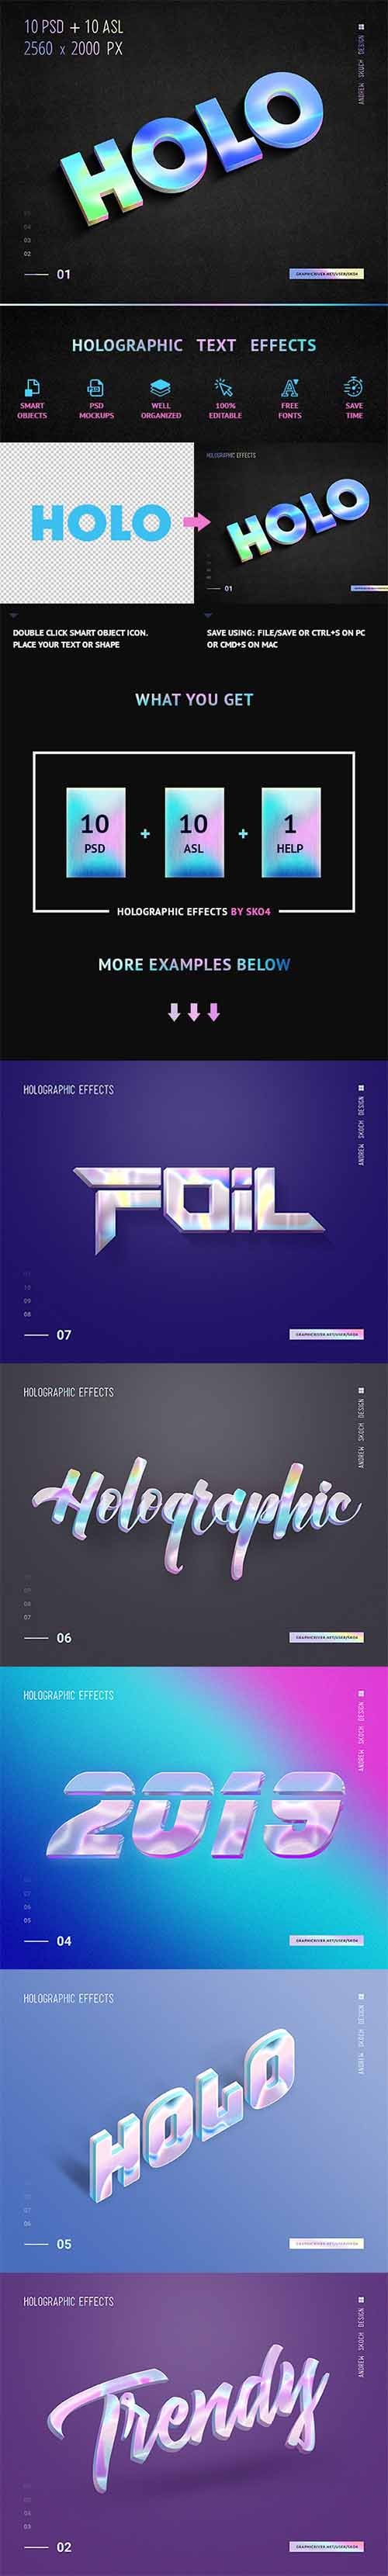 Holographic Text - 10 PSD 23178255